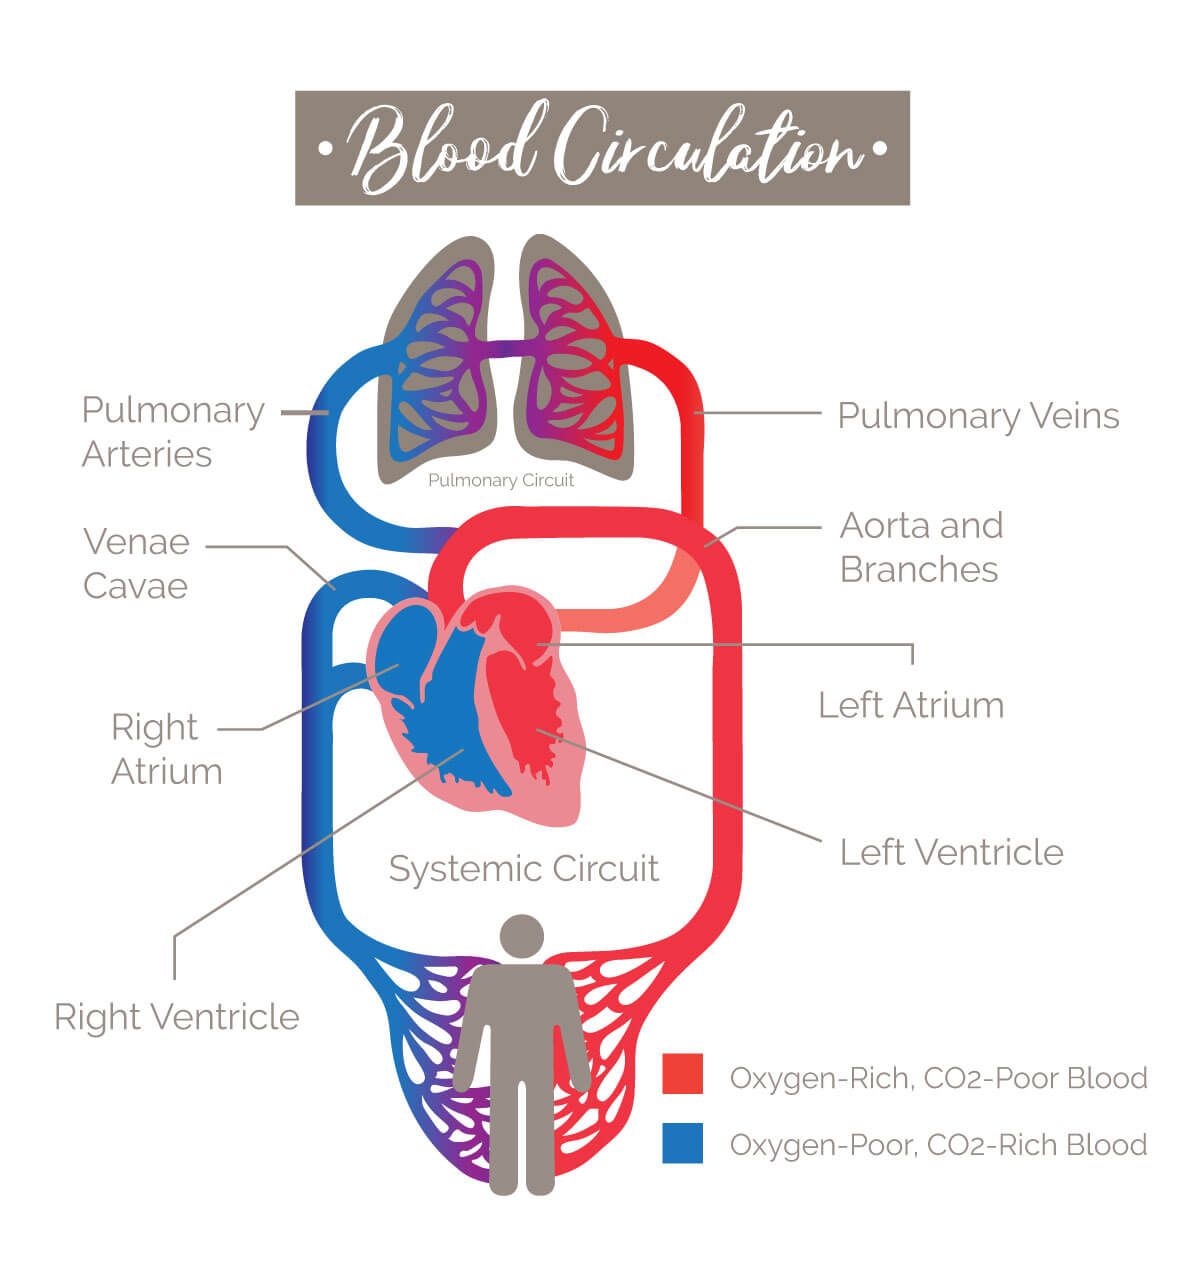 Infographic on blood circulation in the body